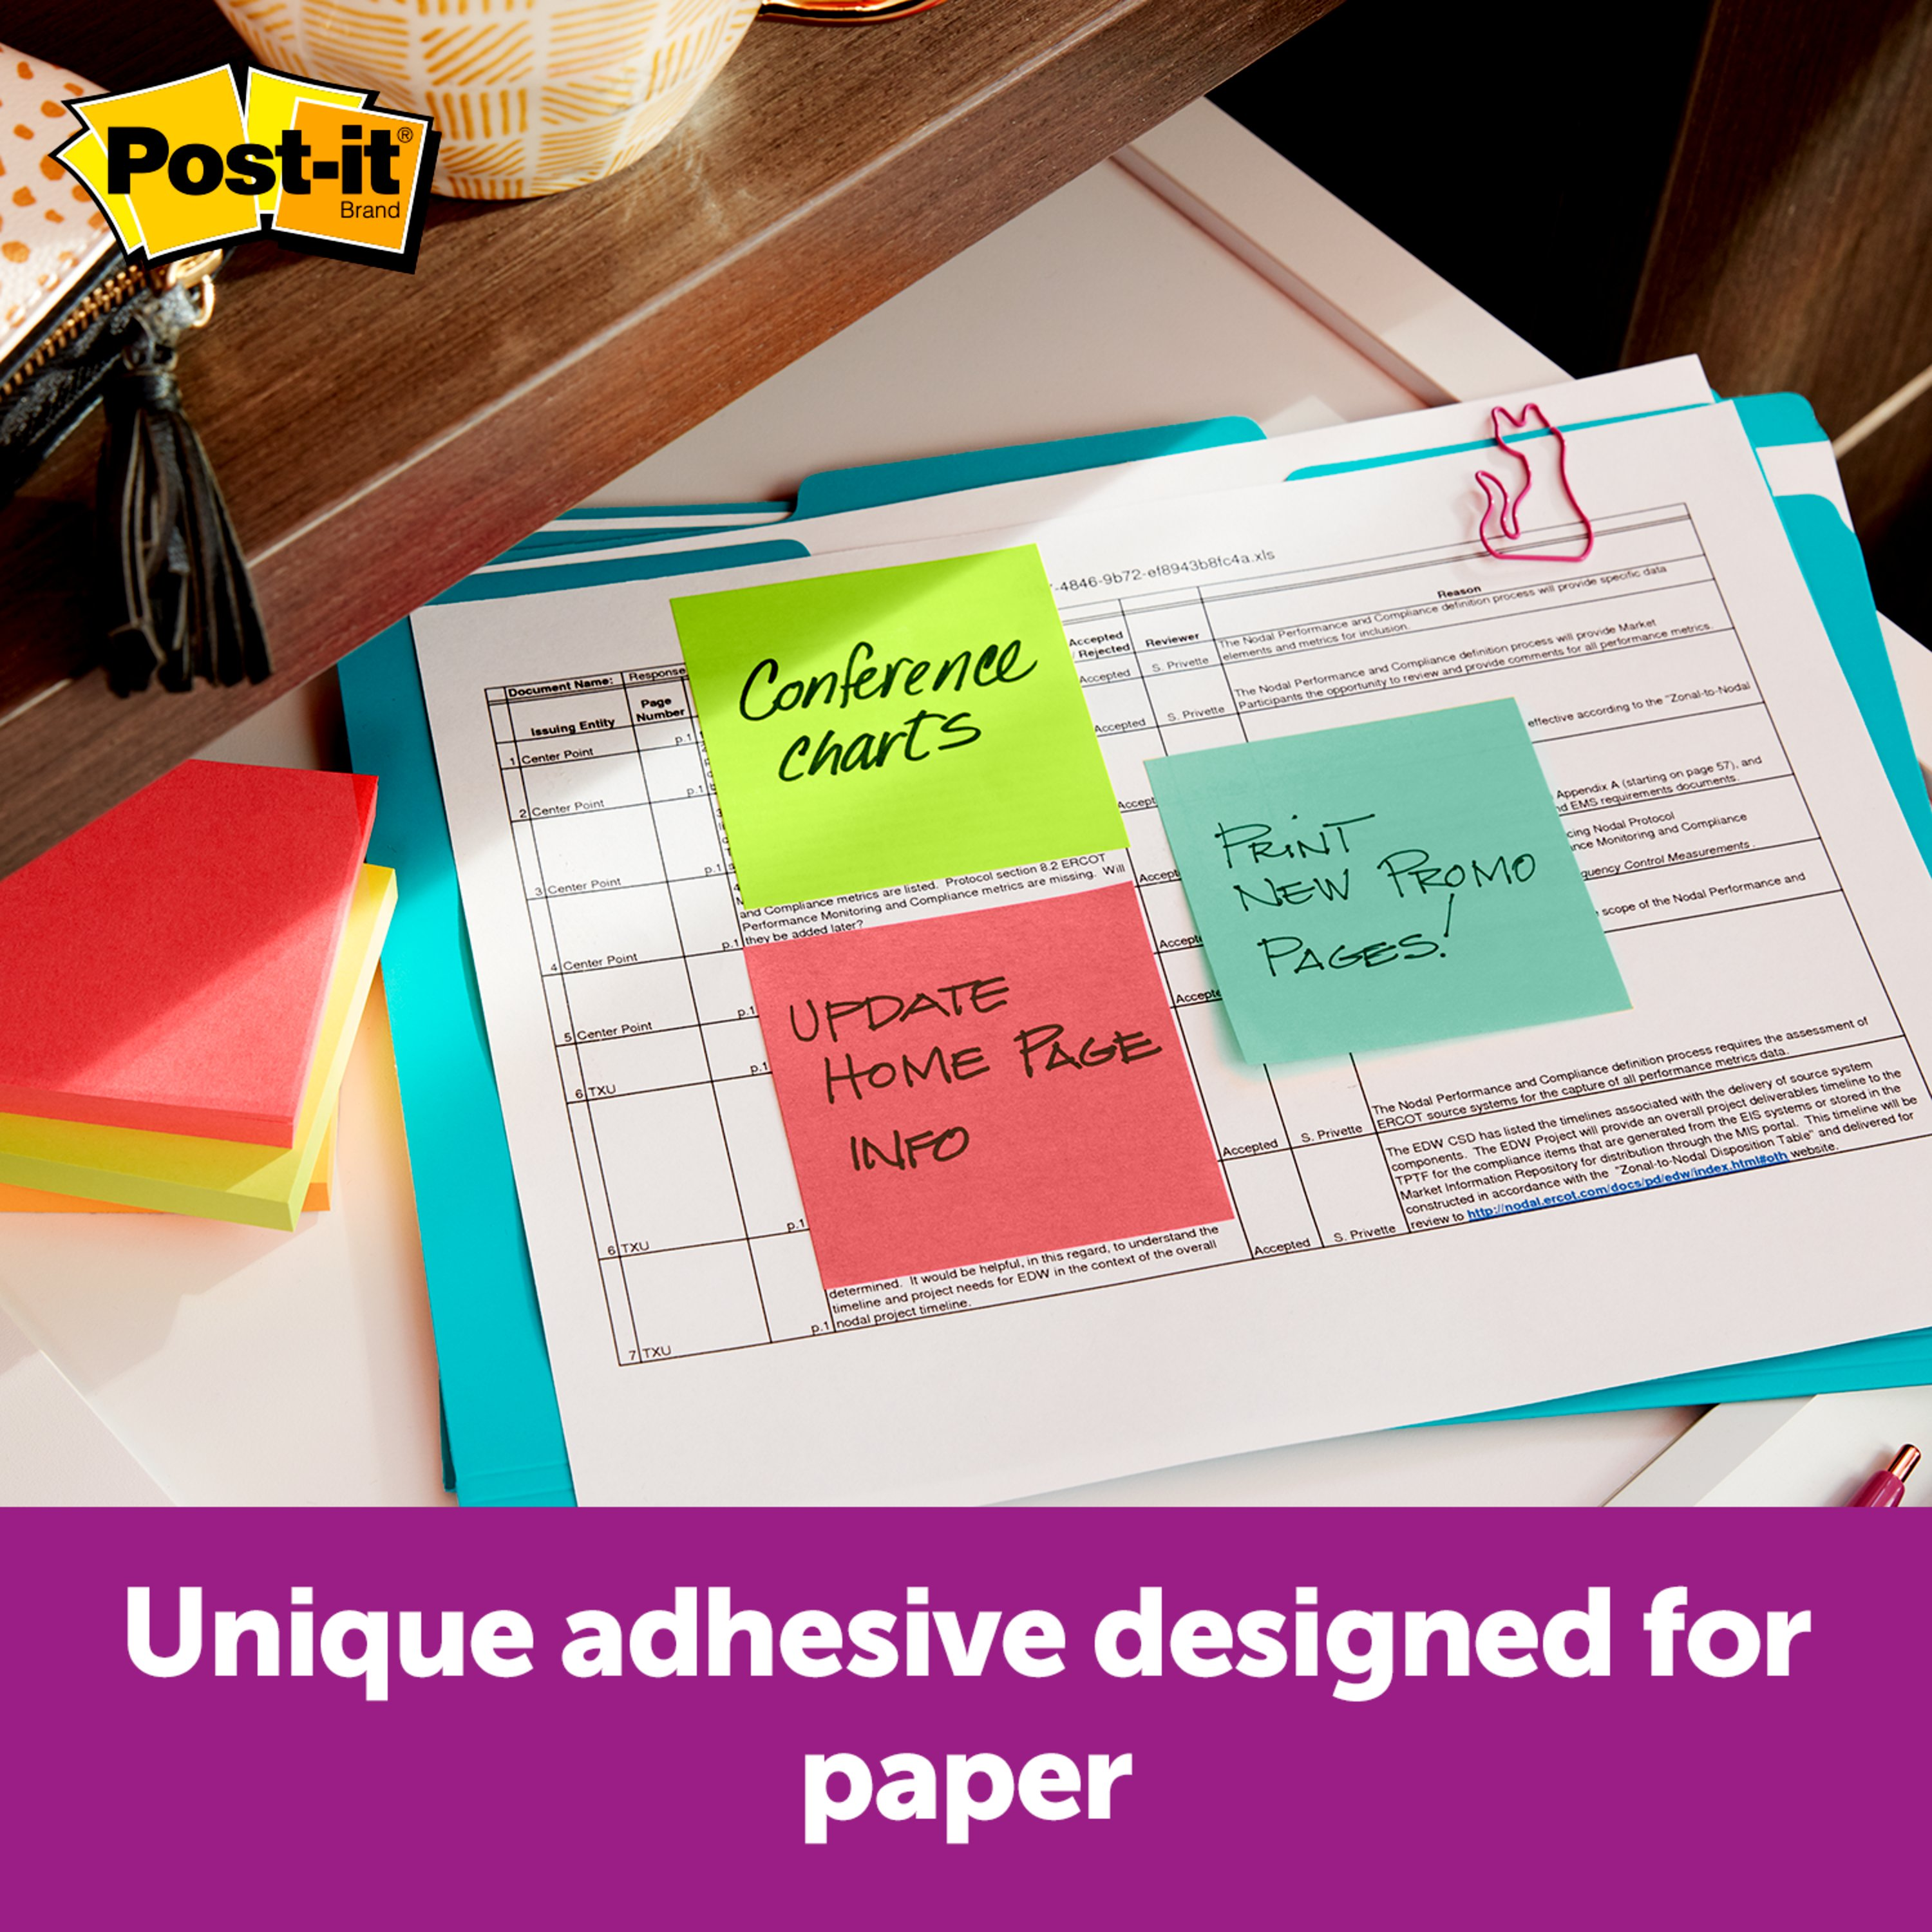 Call Out Important Information Designed for Pop-up Note Dispensers Pink Green Blue 12 Pads//Pack, 3 in R330-N-ALT Orange Post-it Pop-up Notes Yellow x 3 in